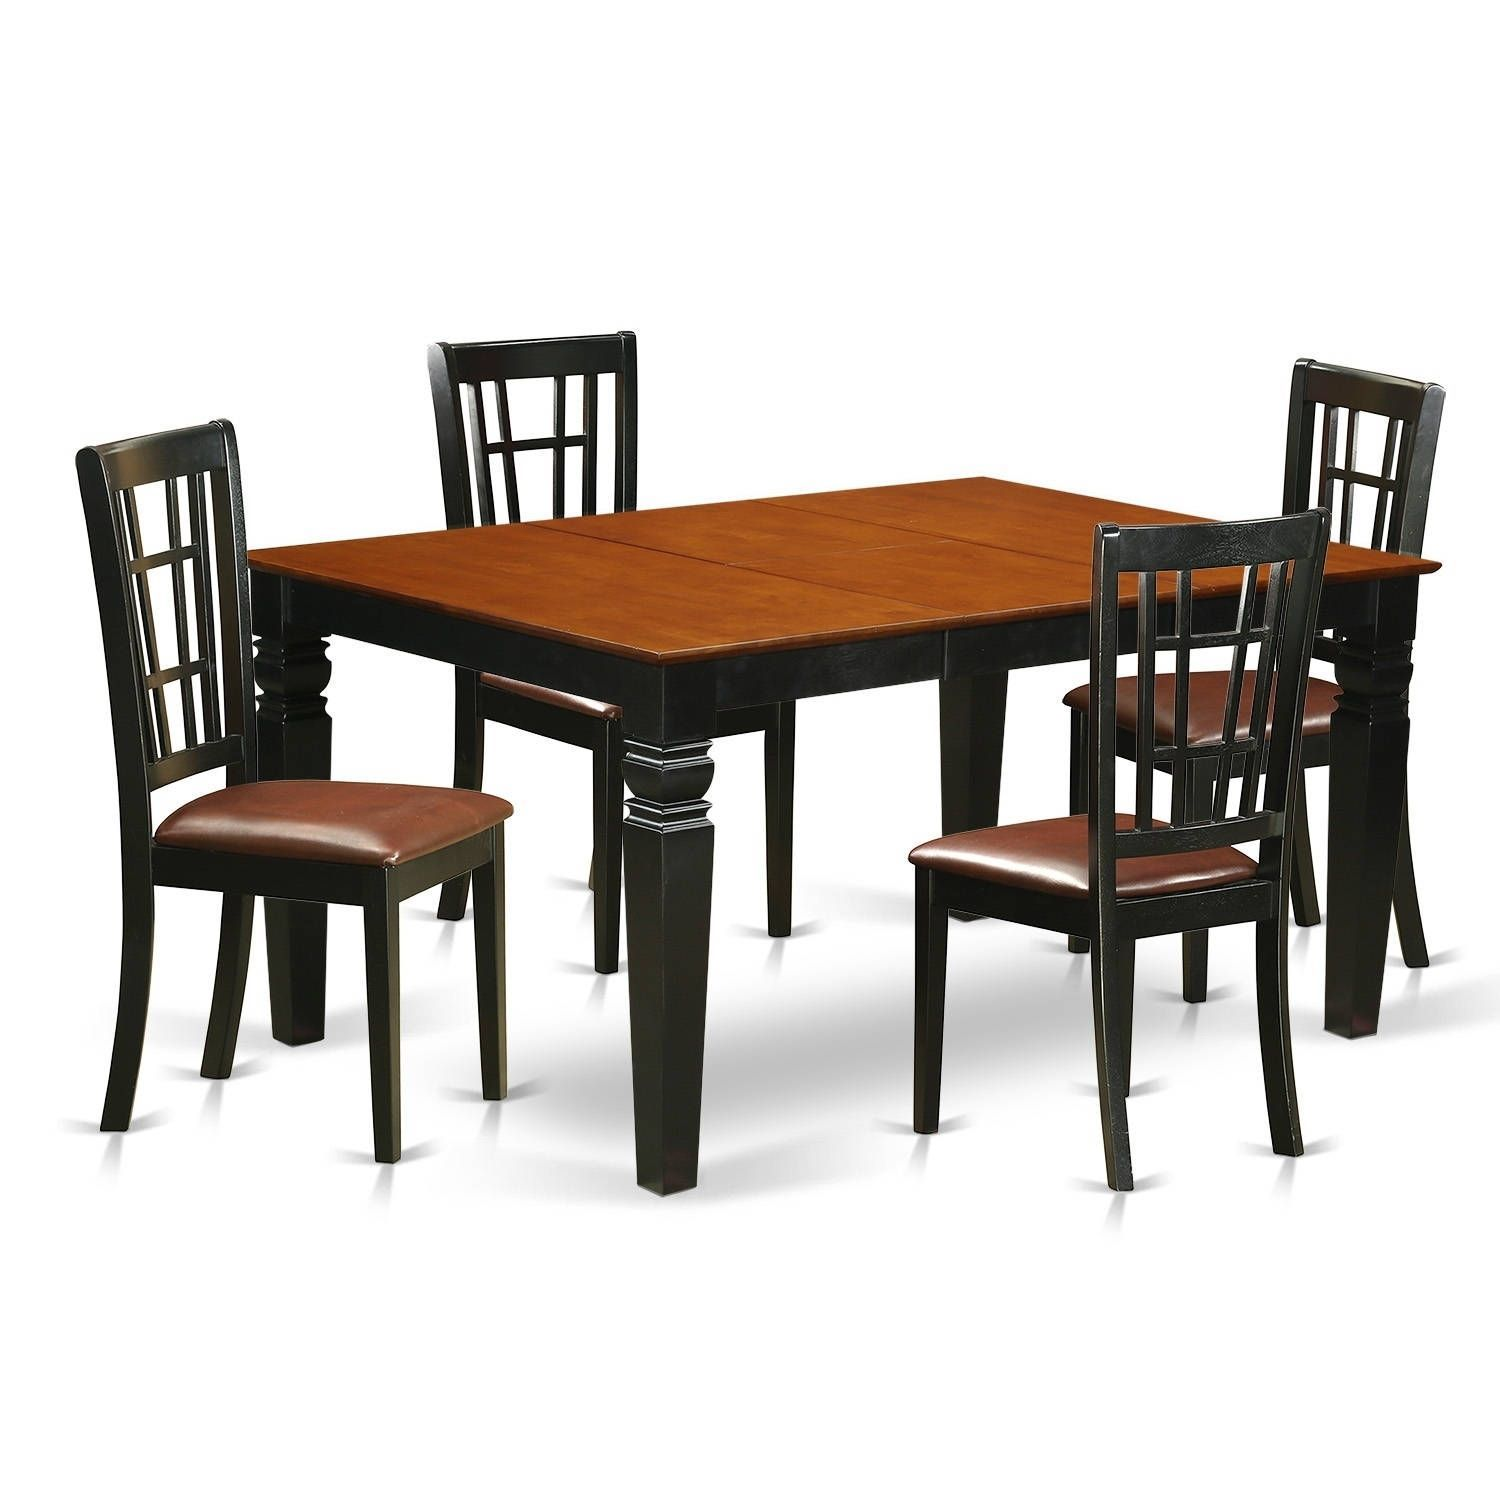 WENI5-BCH 5 Pc Dinette set with a Dining Table and 4 Kitchen Chairs ...